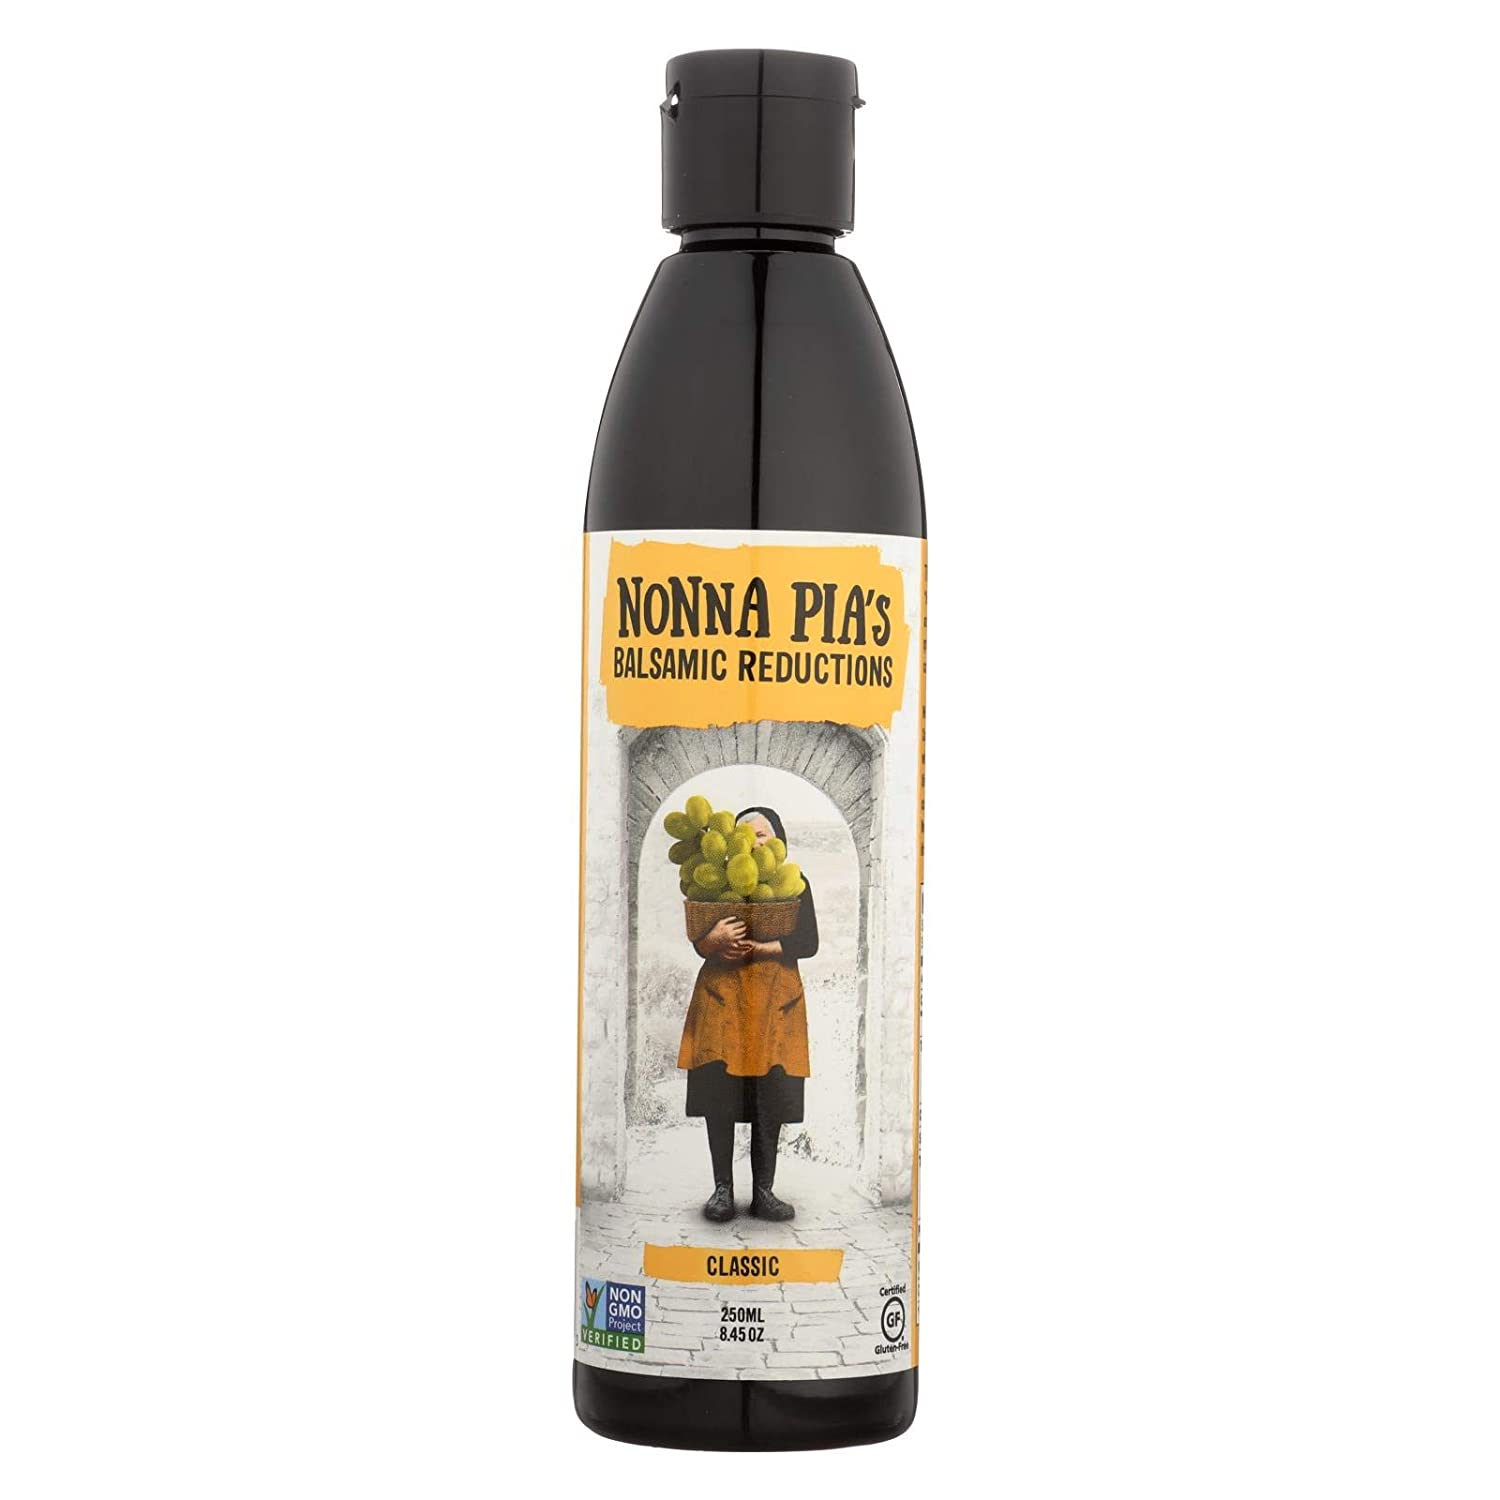 Image result for nonna pia's balsamic reduction